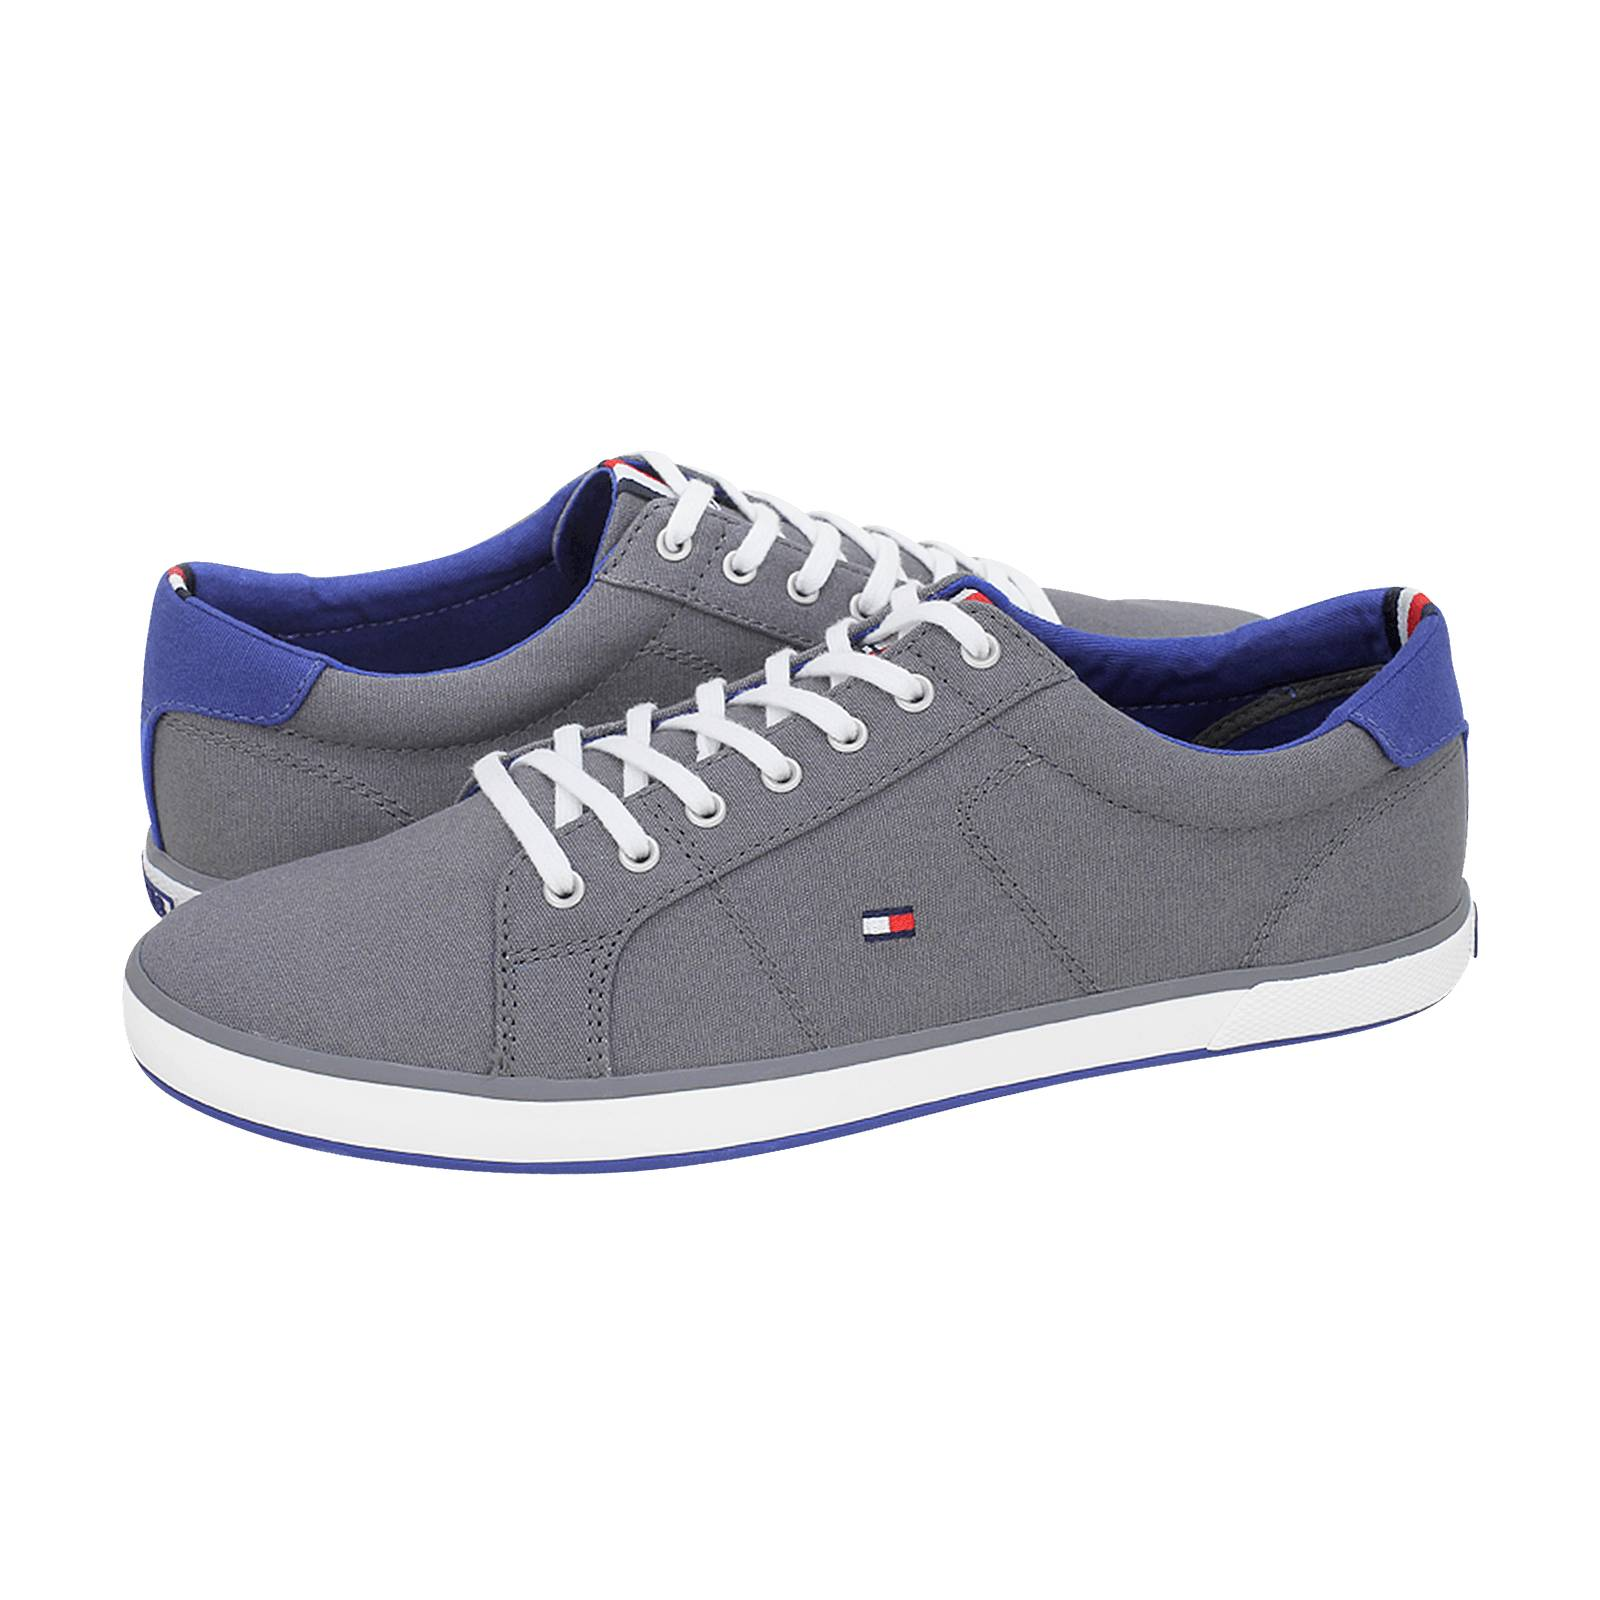 ce47a30279e9 Harlow 1D - Tommy Hilfiger Men s casual shoes made of fabric and ...